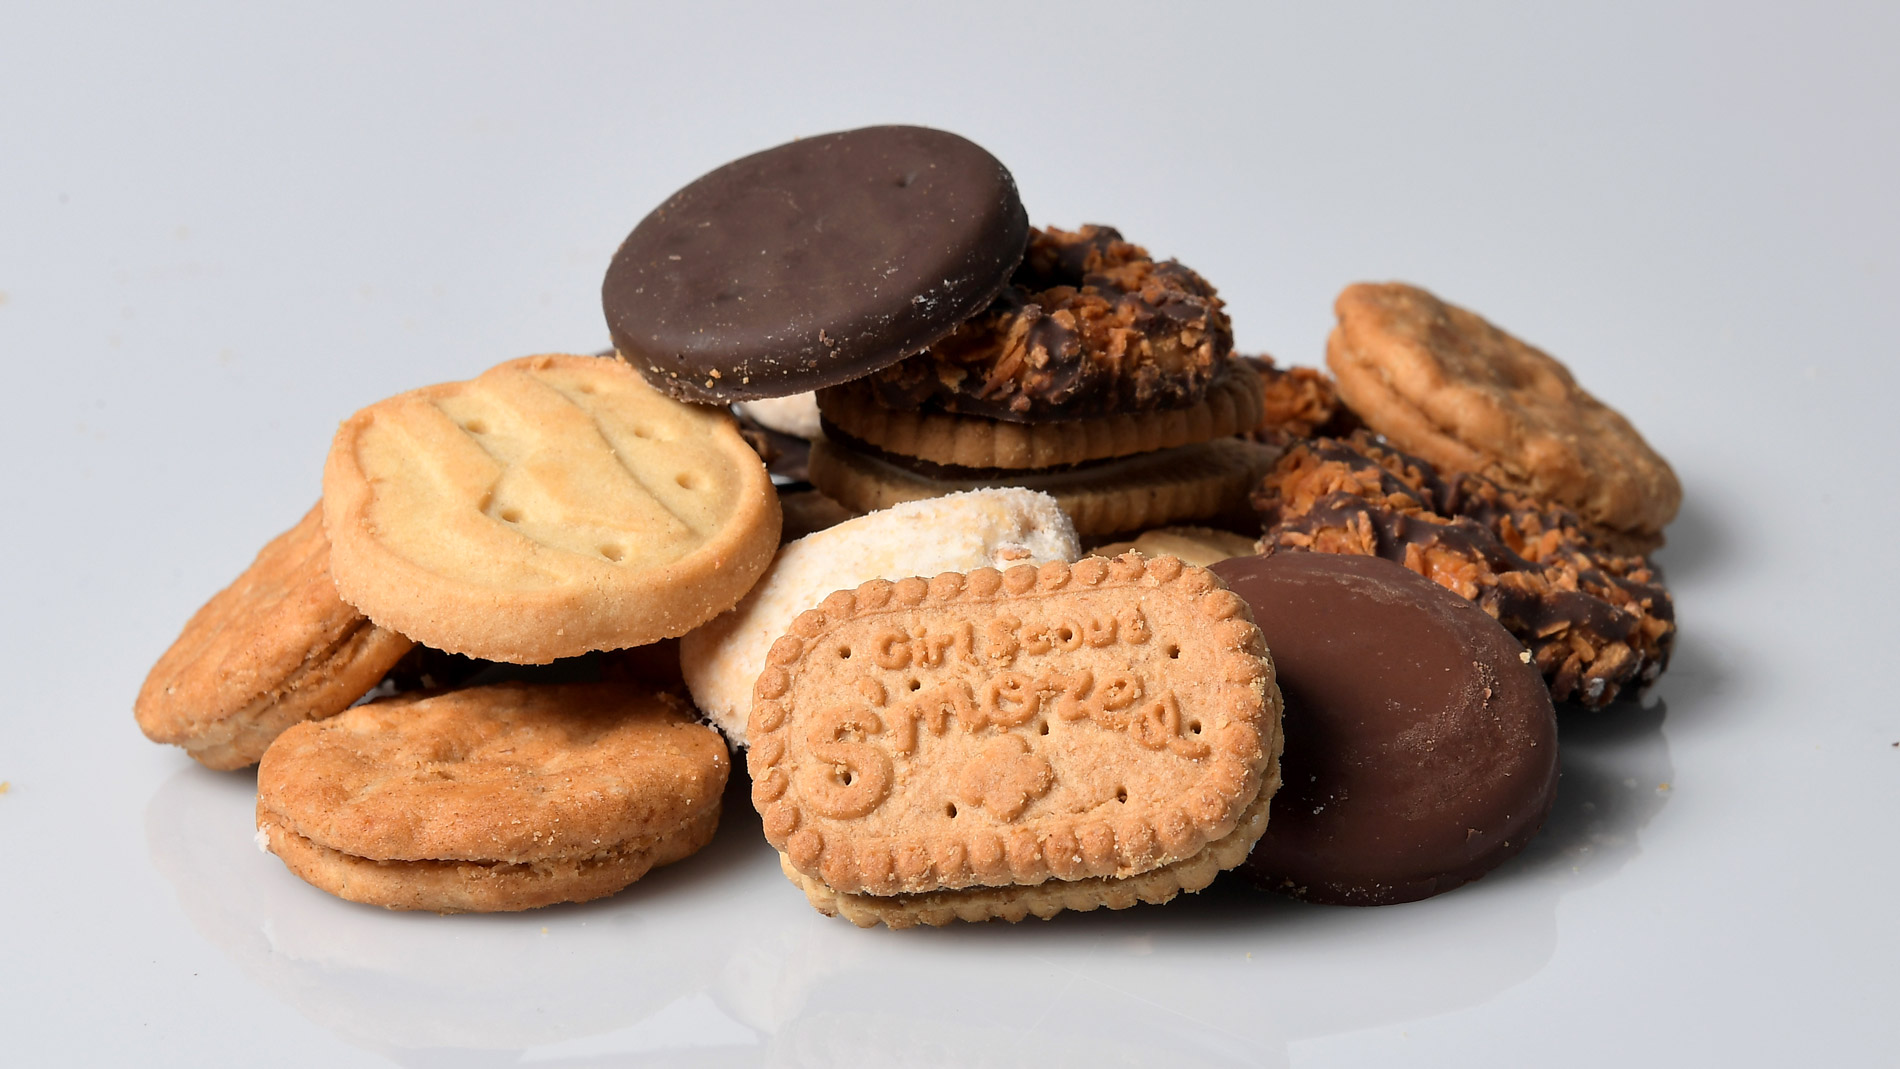 Girl Scout cookies are back with 3 new flavors